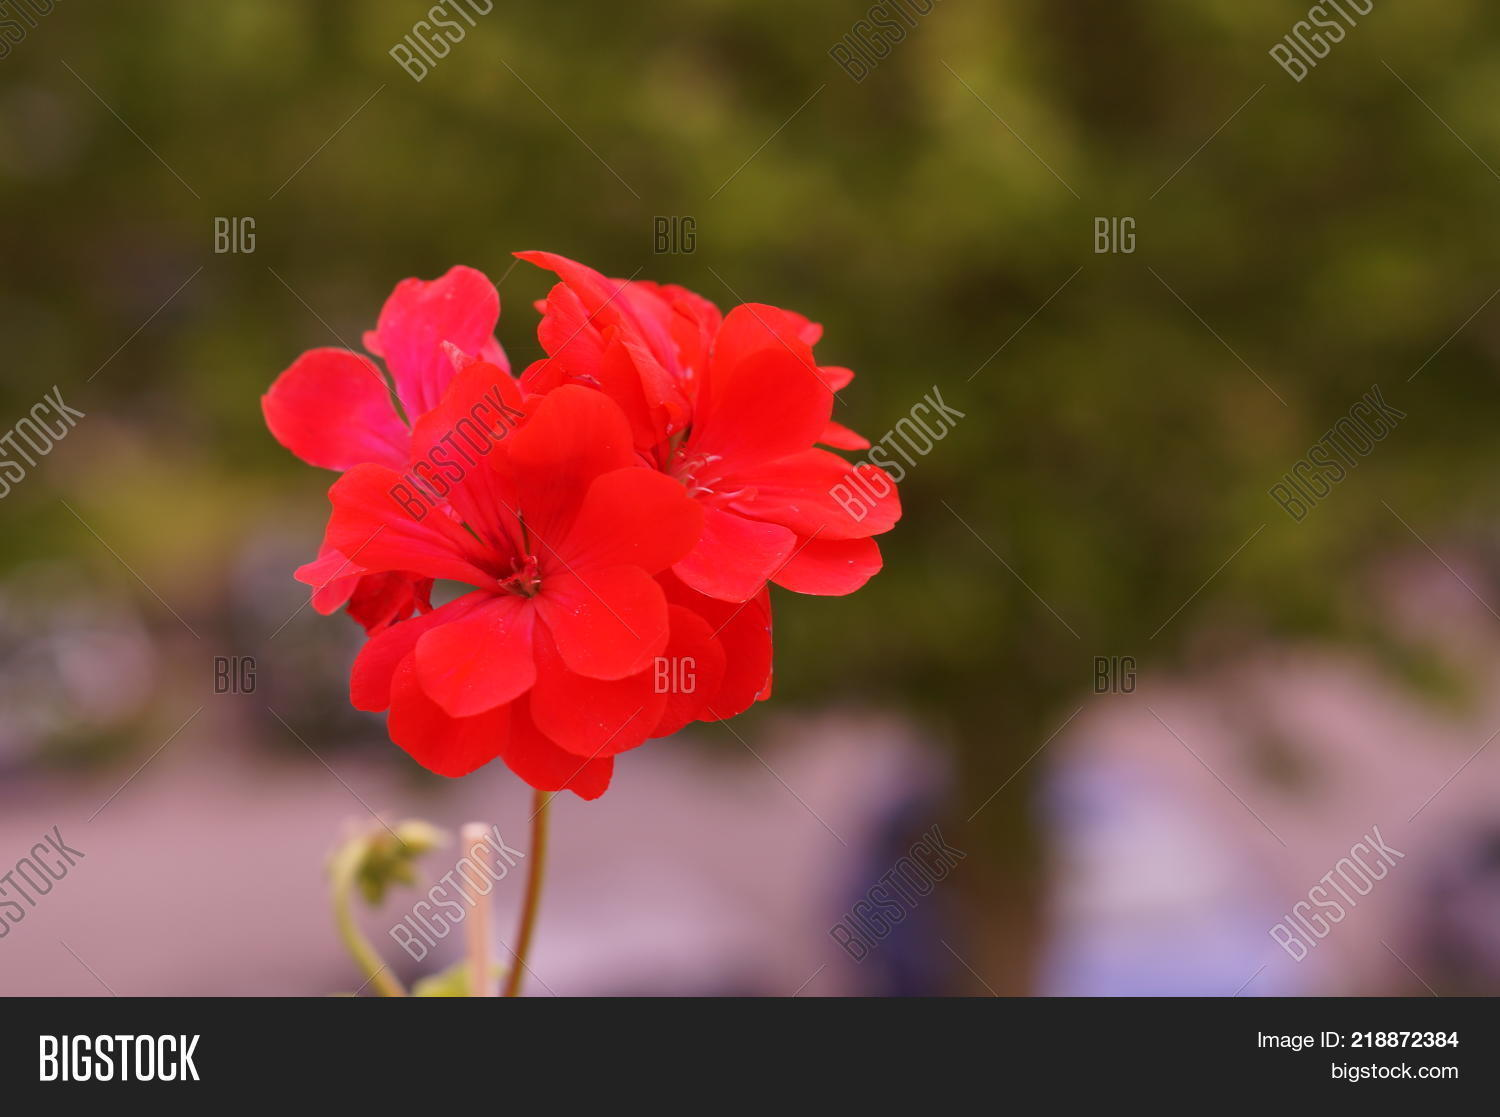 Flowers Red Color Image & Photo (Free Trial) | Bigstock